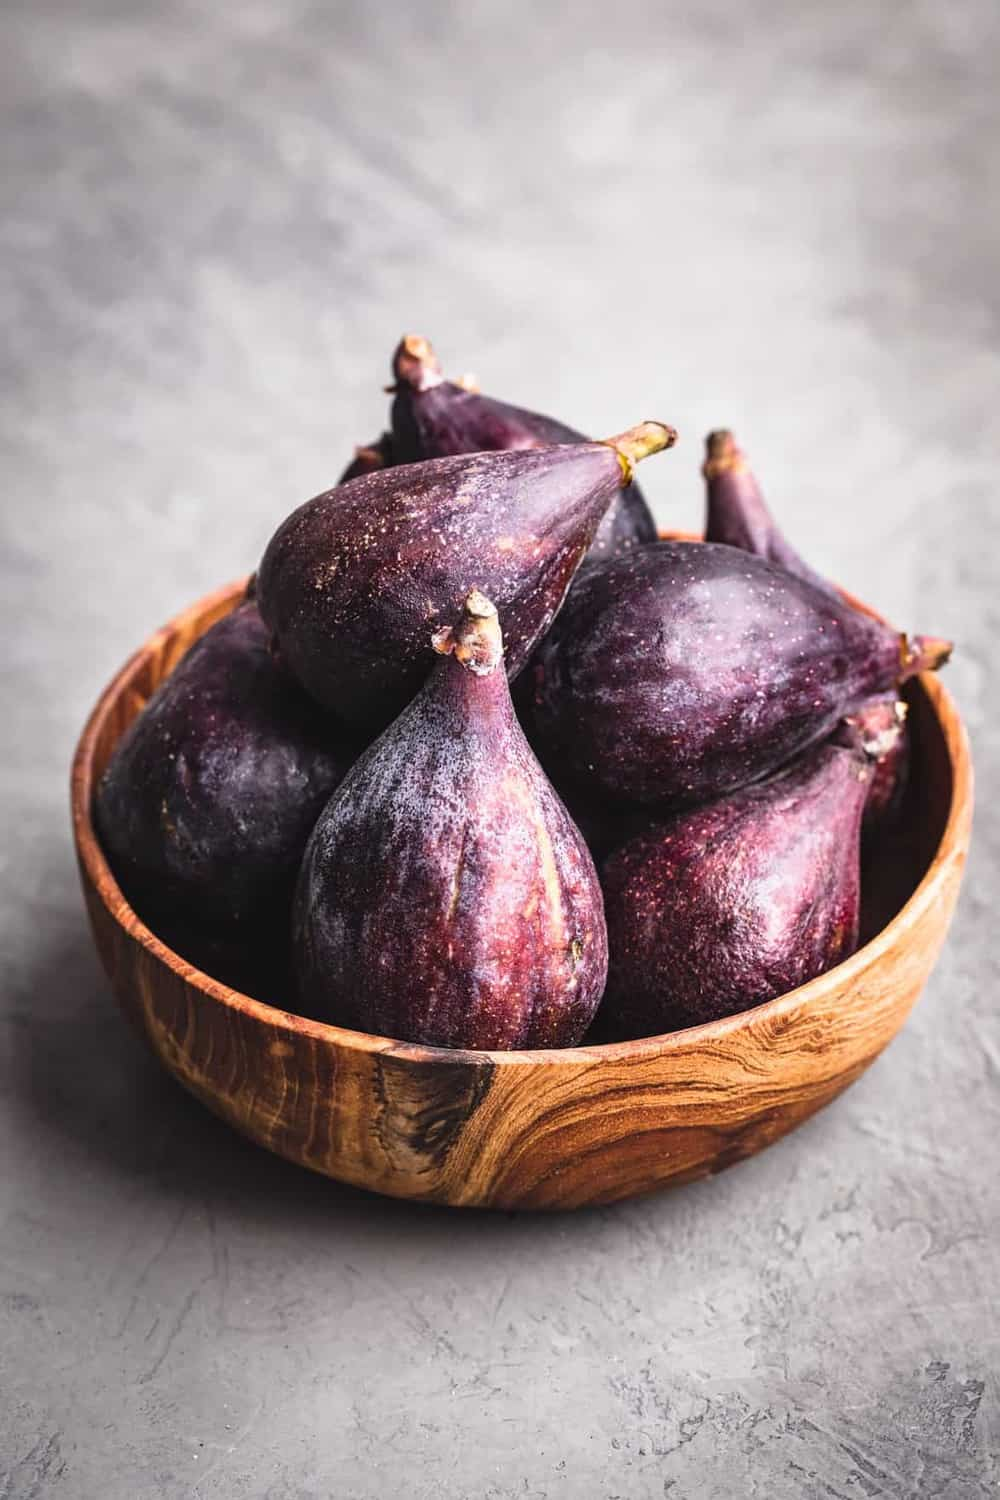 A handfuls or fresh figs, in a wooden bowl, with a grey background.